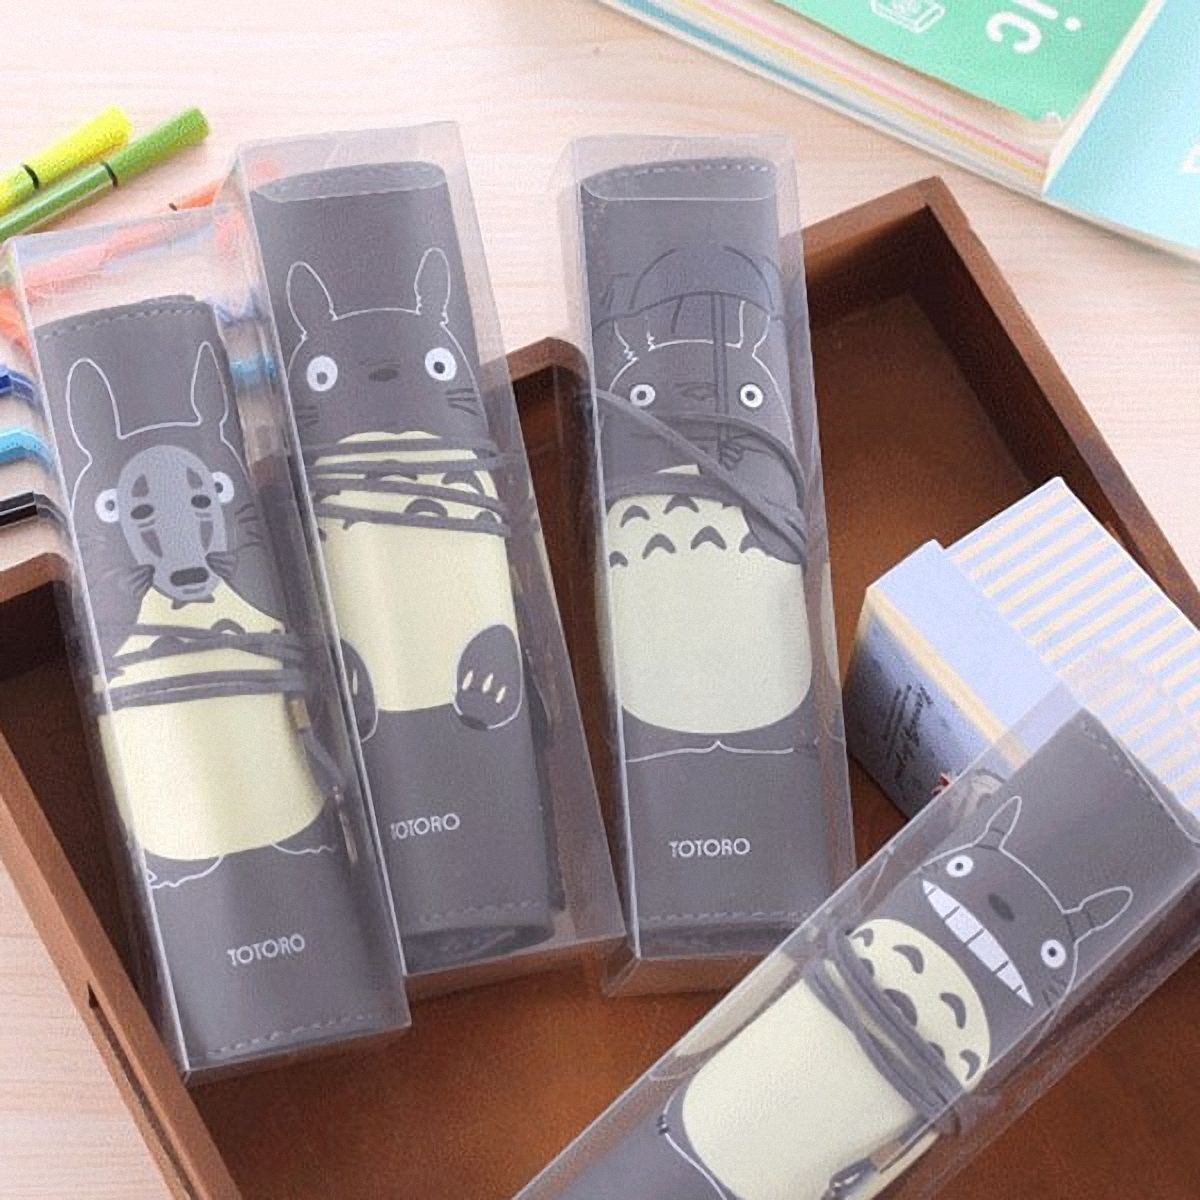 1 Pcs Korean Creative Totoro Pencil Case Pencil Box Pencil Bag Leather Kawaii Stationery Pouch Office School Supplies